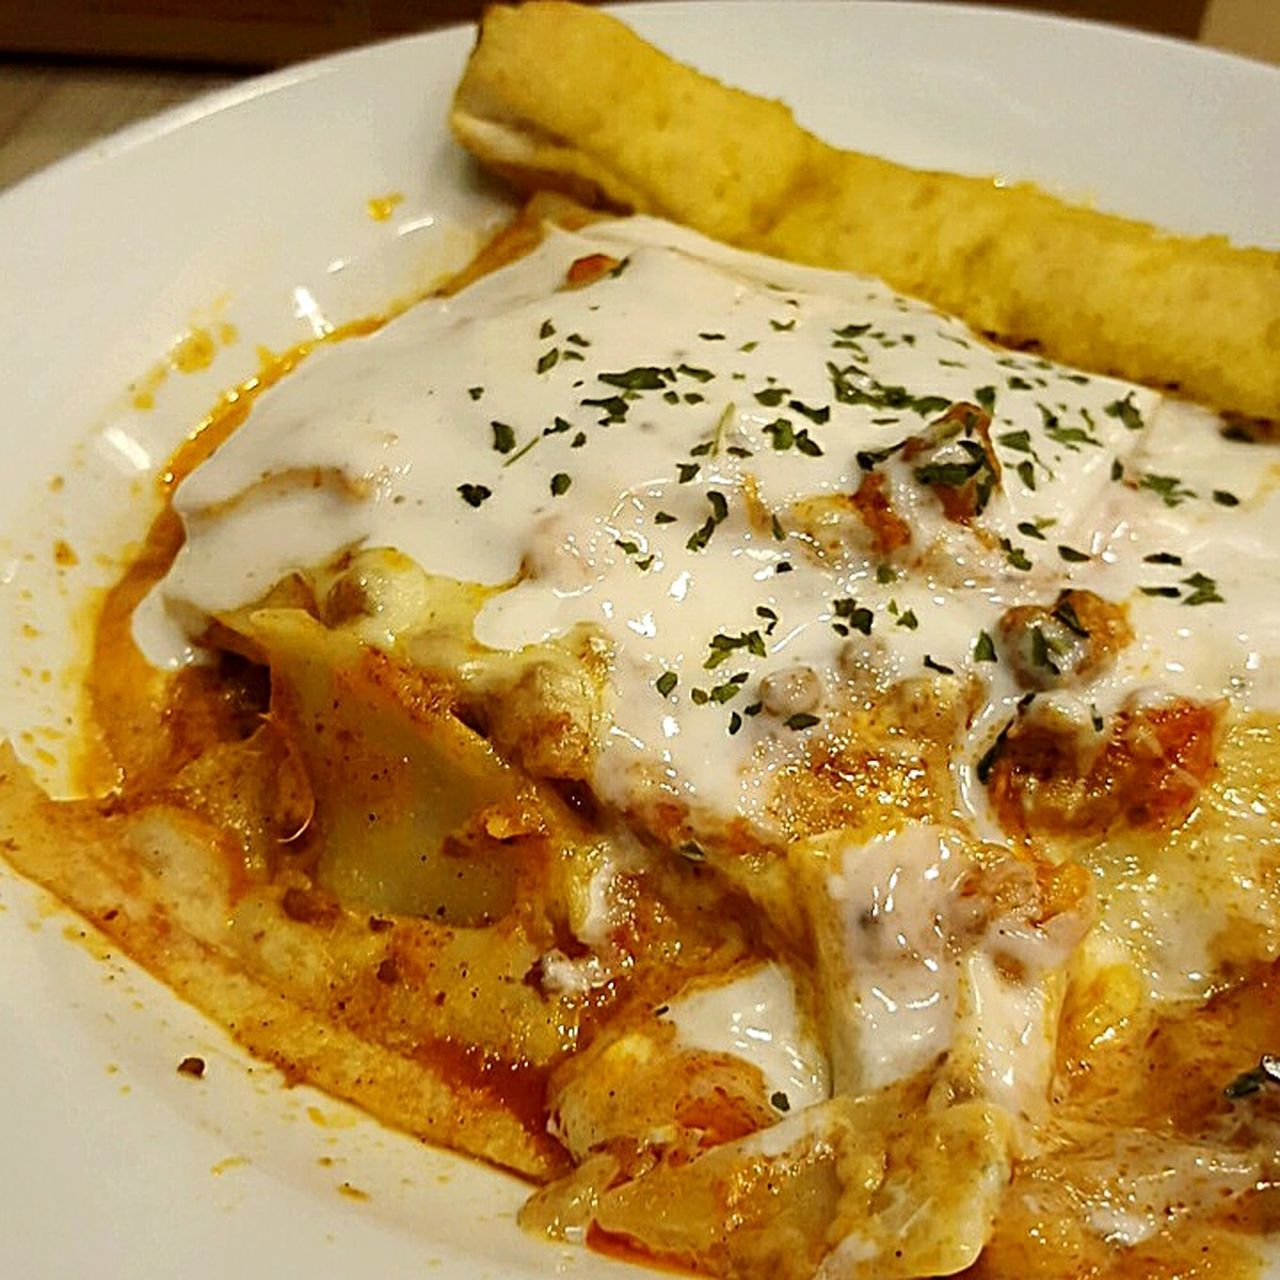 The Foodie - 2015 EyeEm Awards Foodporn Food Foodphotography Foodspotting Foodstory Snapshot Foodie Lasagna Ohhlala